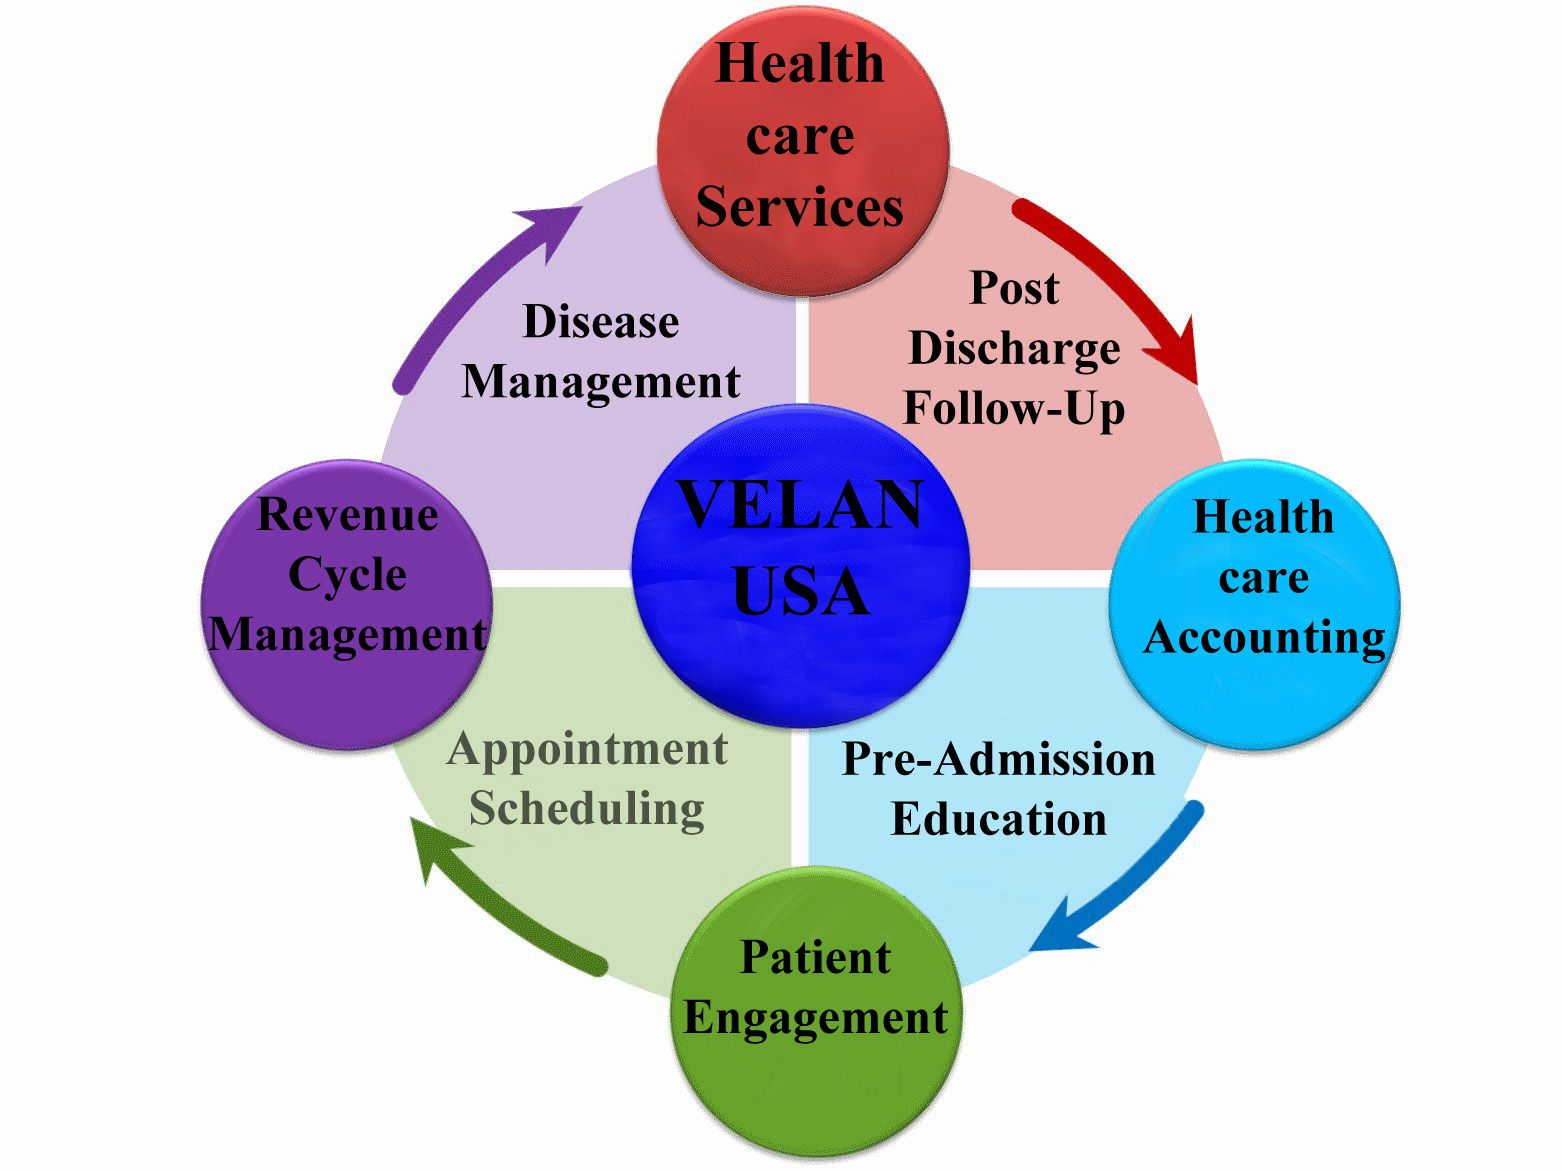 small resolution of velanusa offers healthcare accounting revenue cycle management and patient engagement services we process your financial transactions and facilitate you